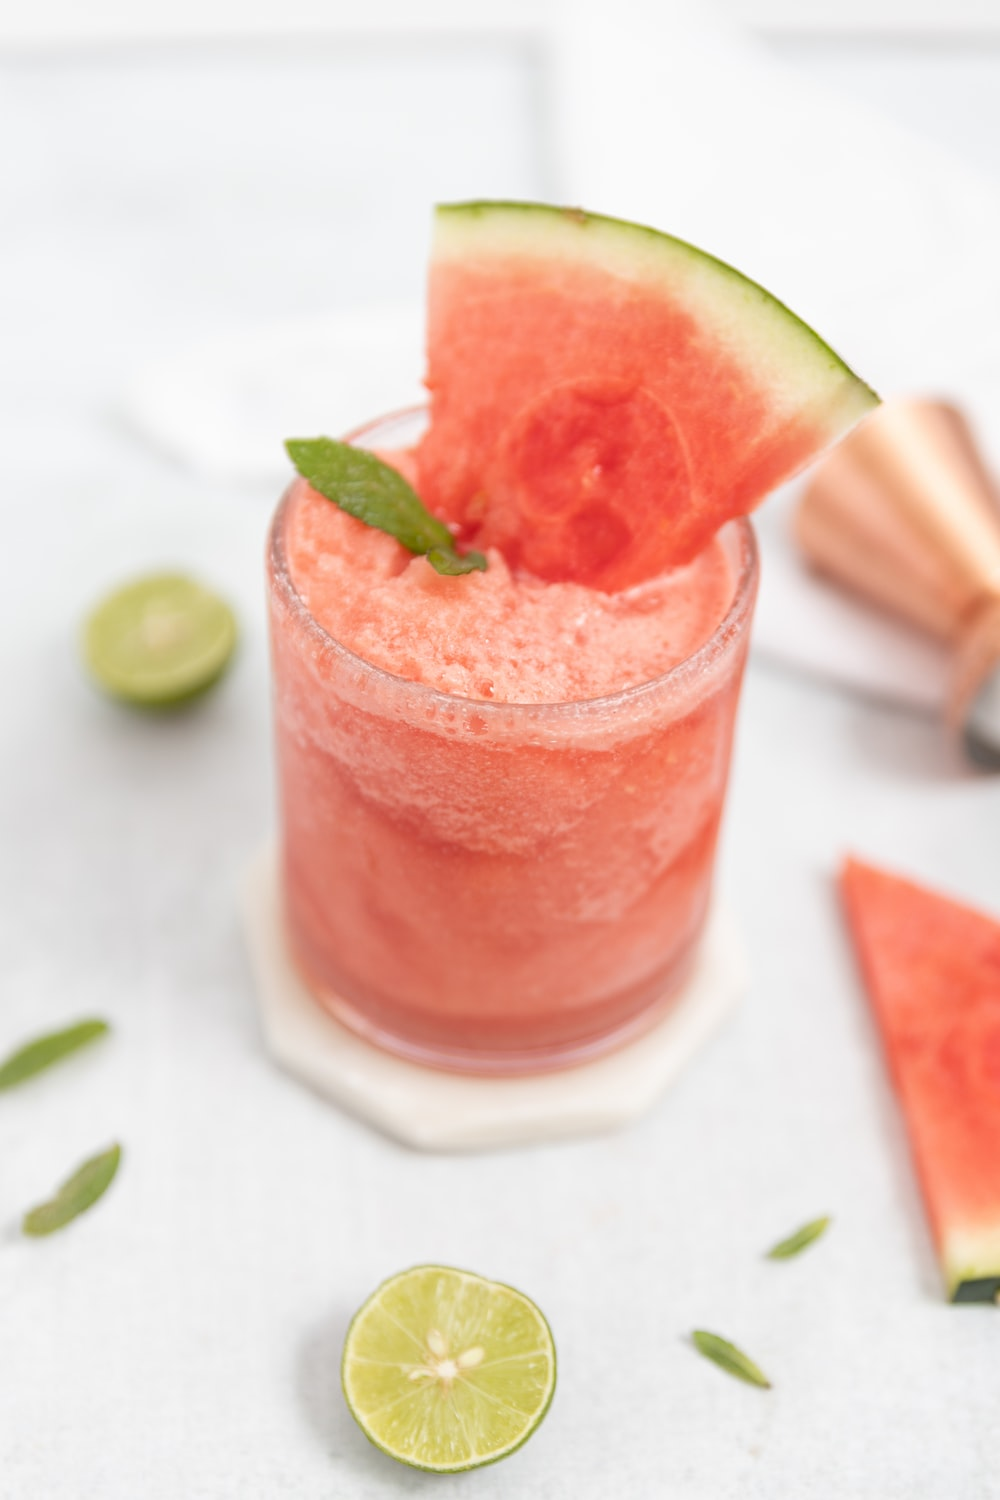 strawberry shake on clear drinking glass